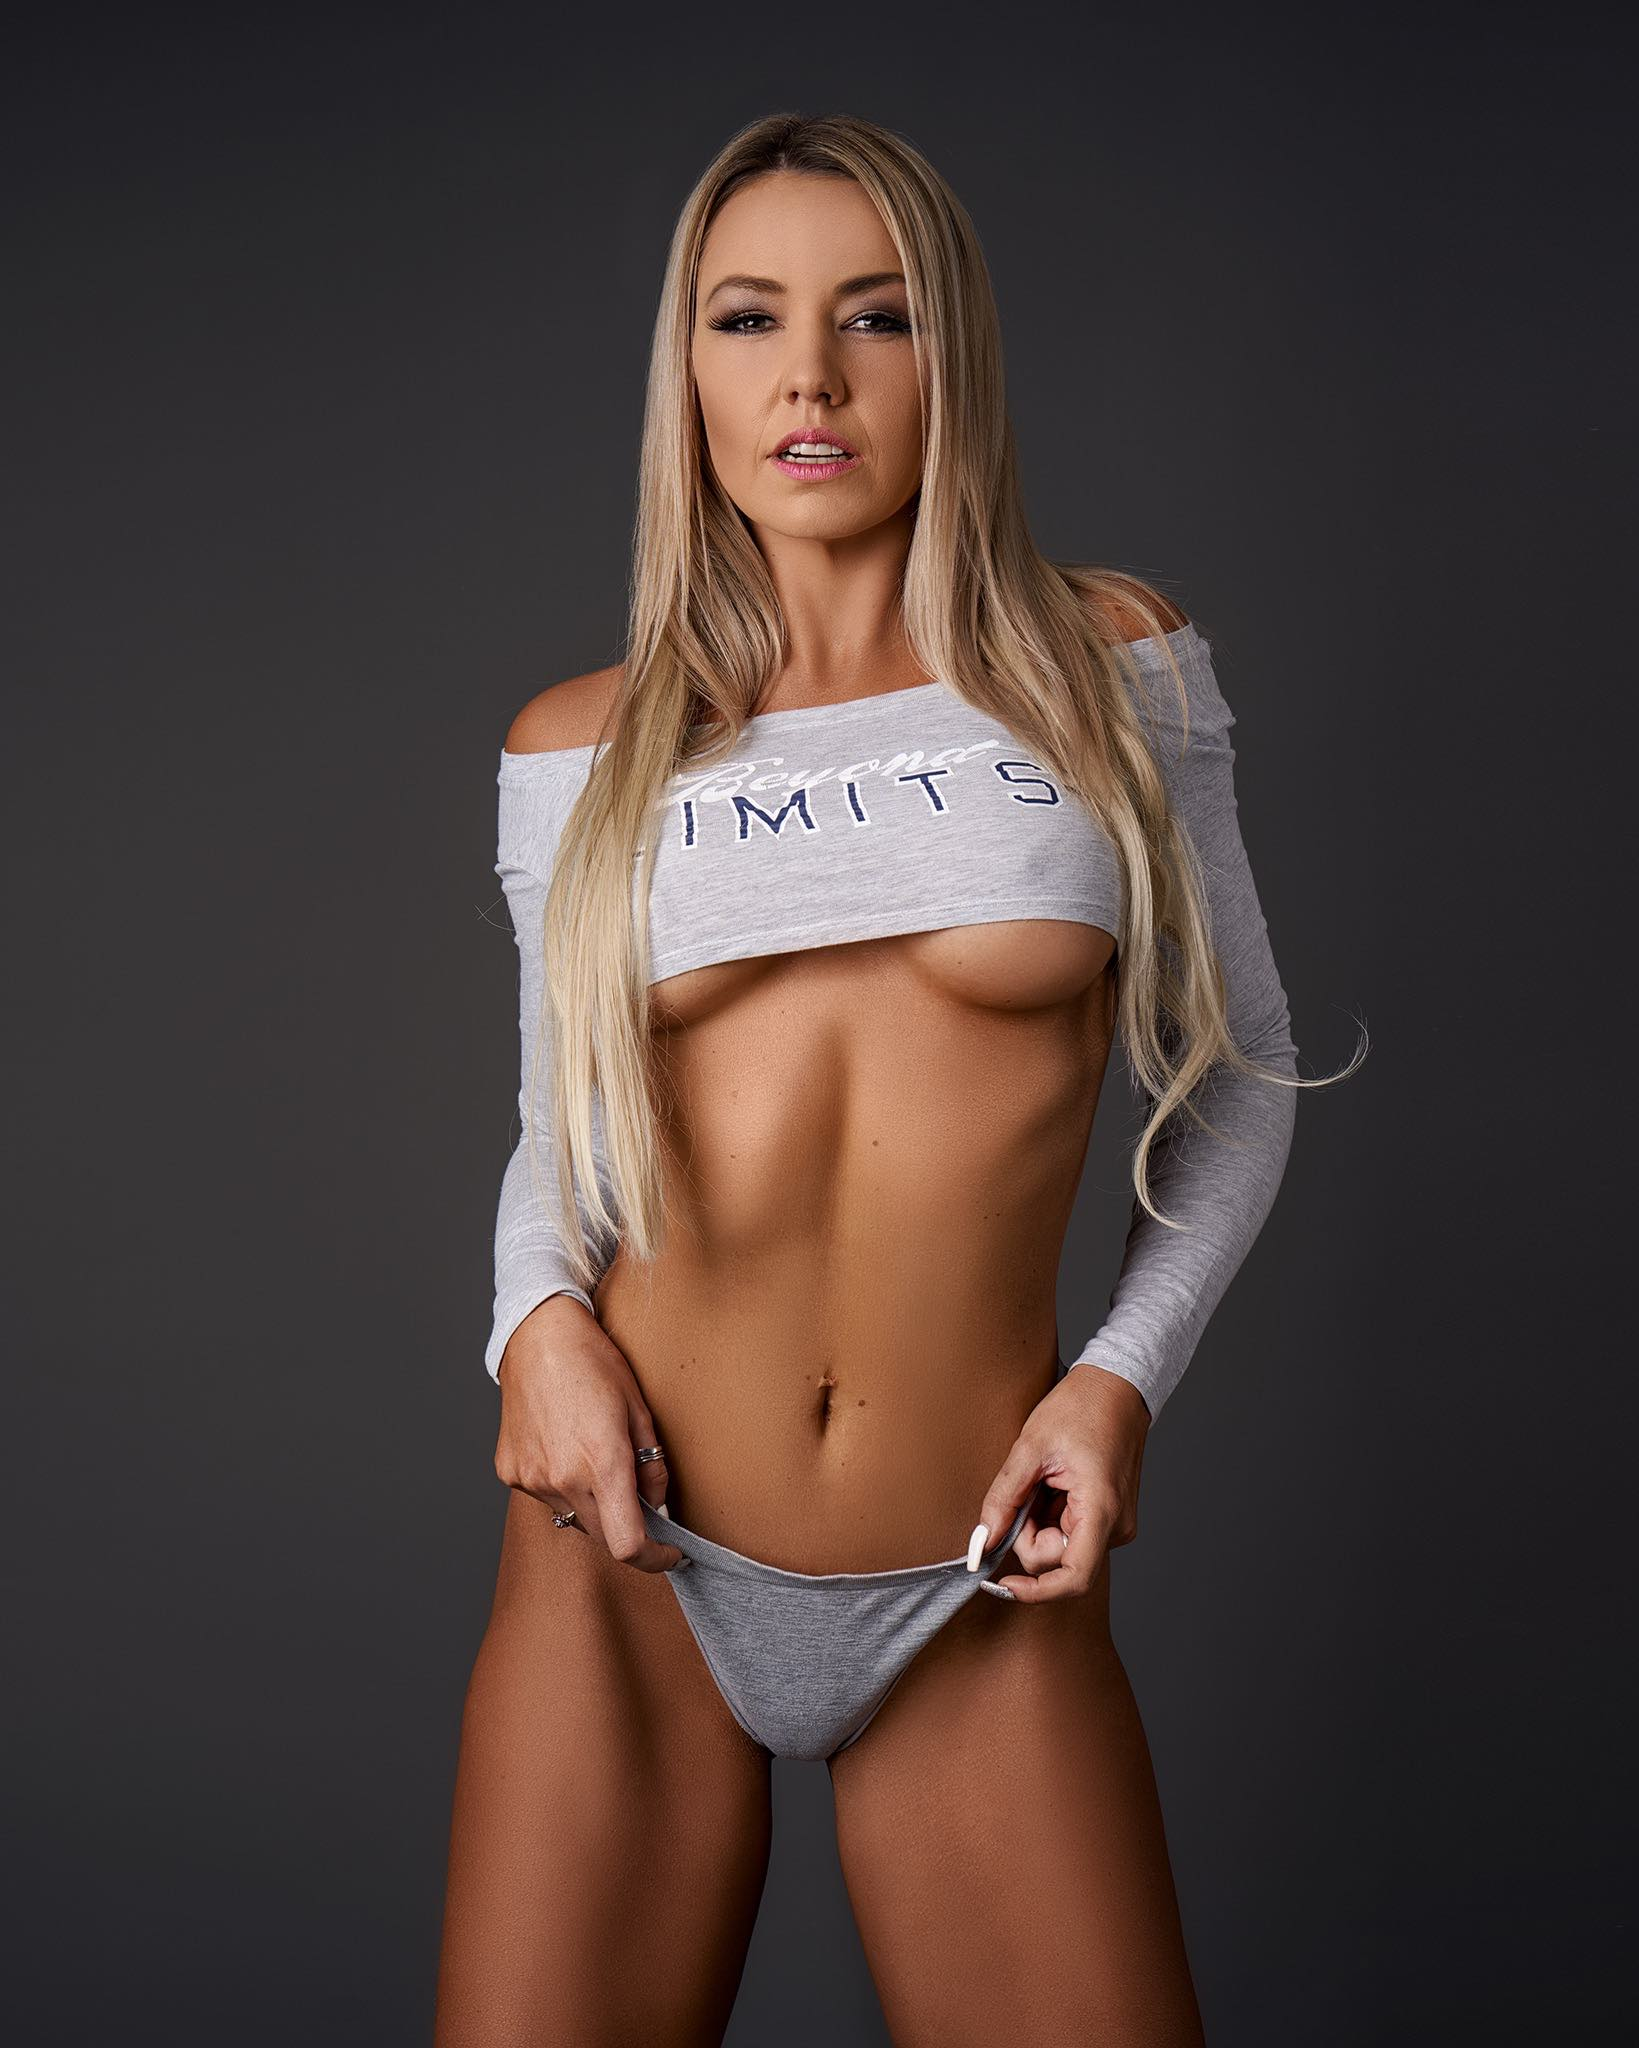 Meet Farrah Rymer in our South African Babes feature